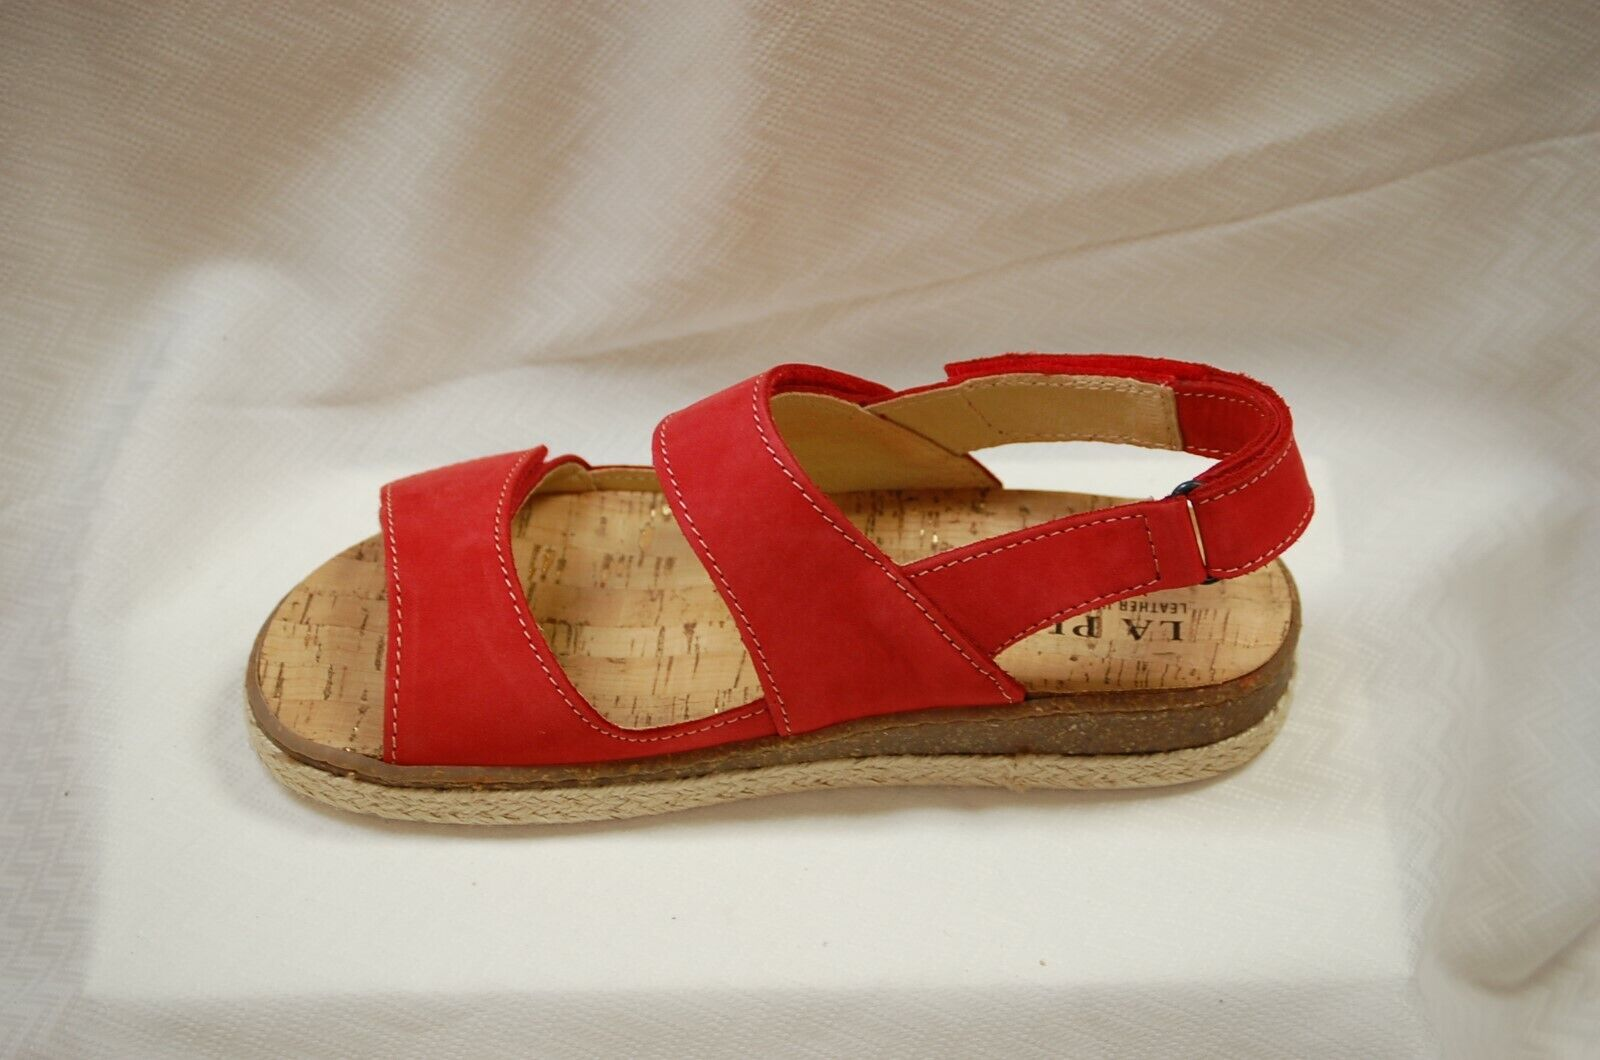 La Plume Pine Sandal with 3 adjustable Straps Red NuBuk leather eur 41